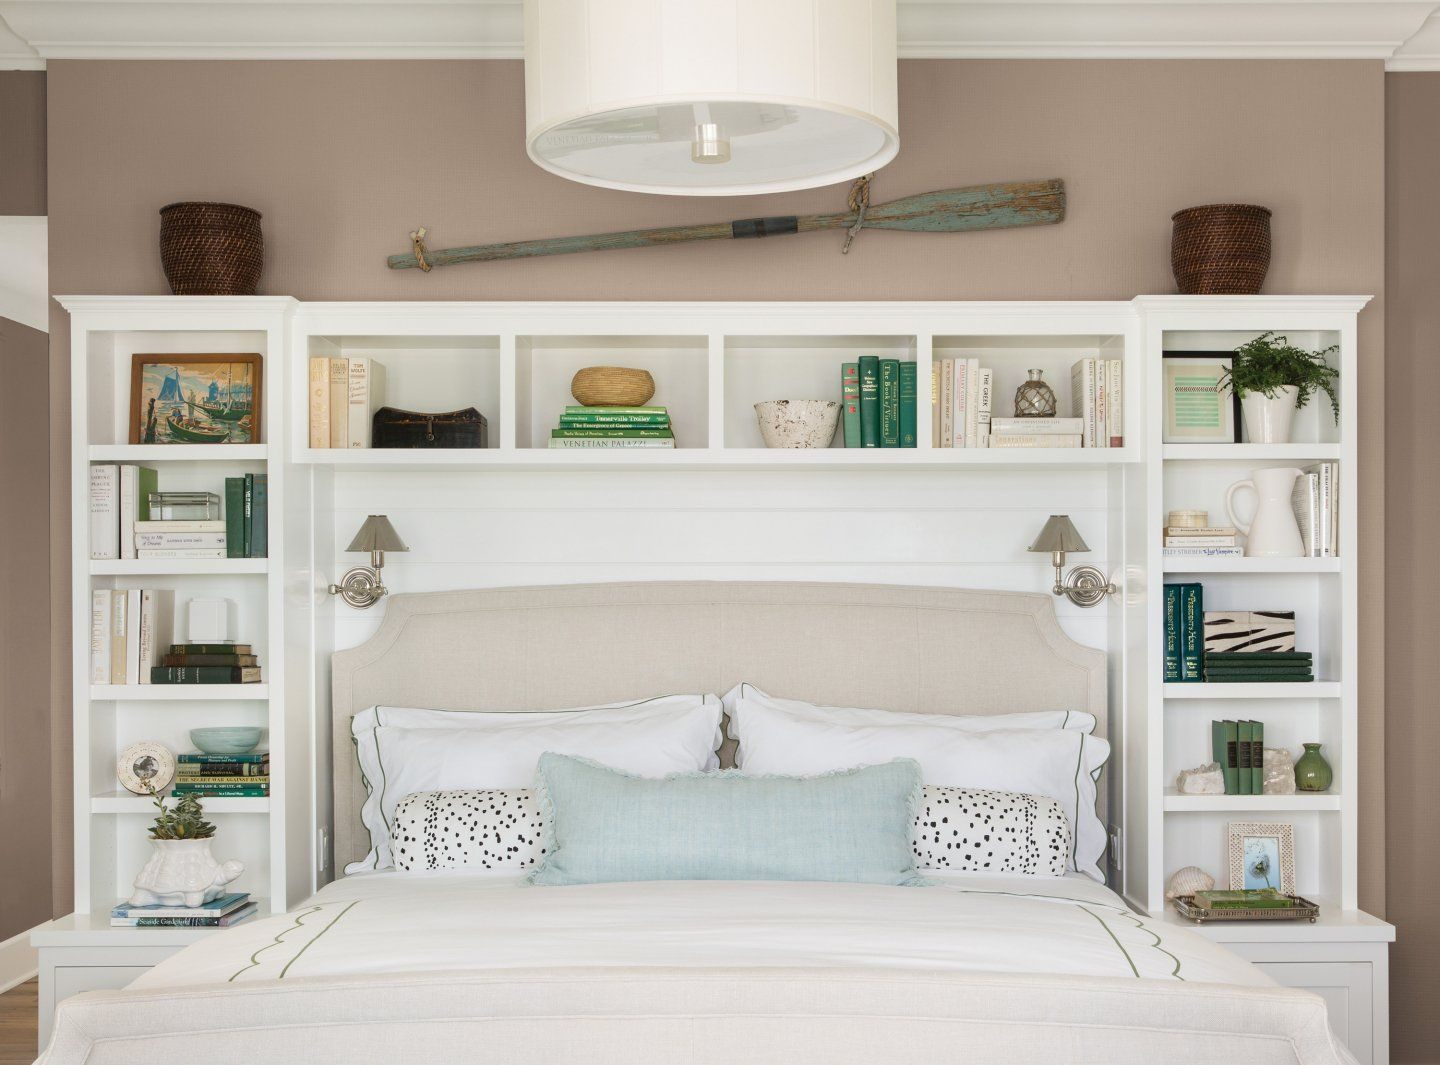 Creamy neutral walls enhance a beautiful storage headboard by complementing  the decorative items and echoing the